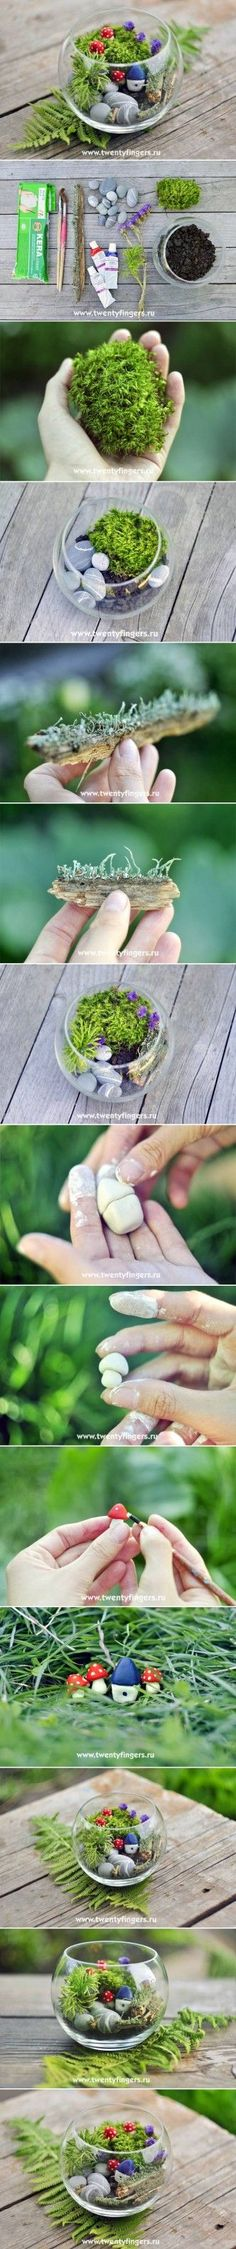 DIY Small Evergreen DIY Projects